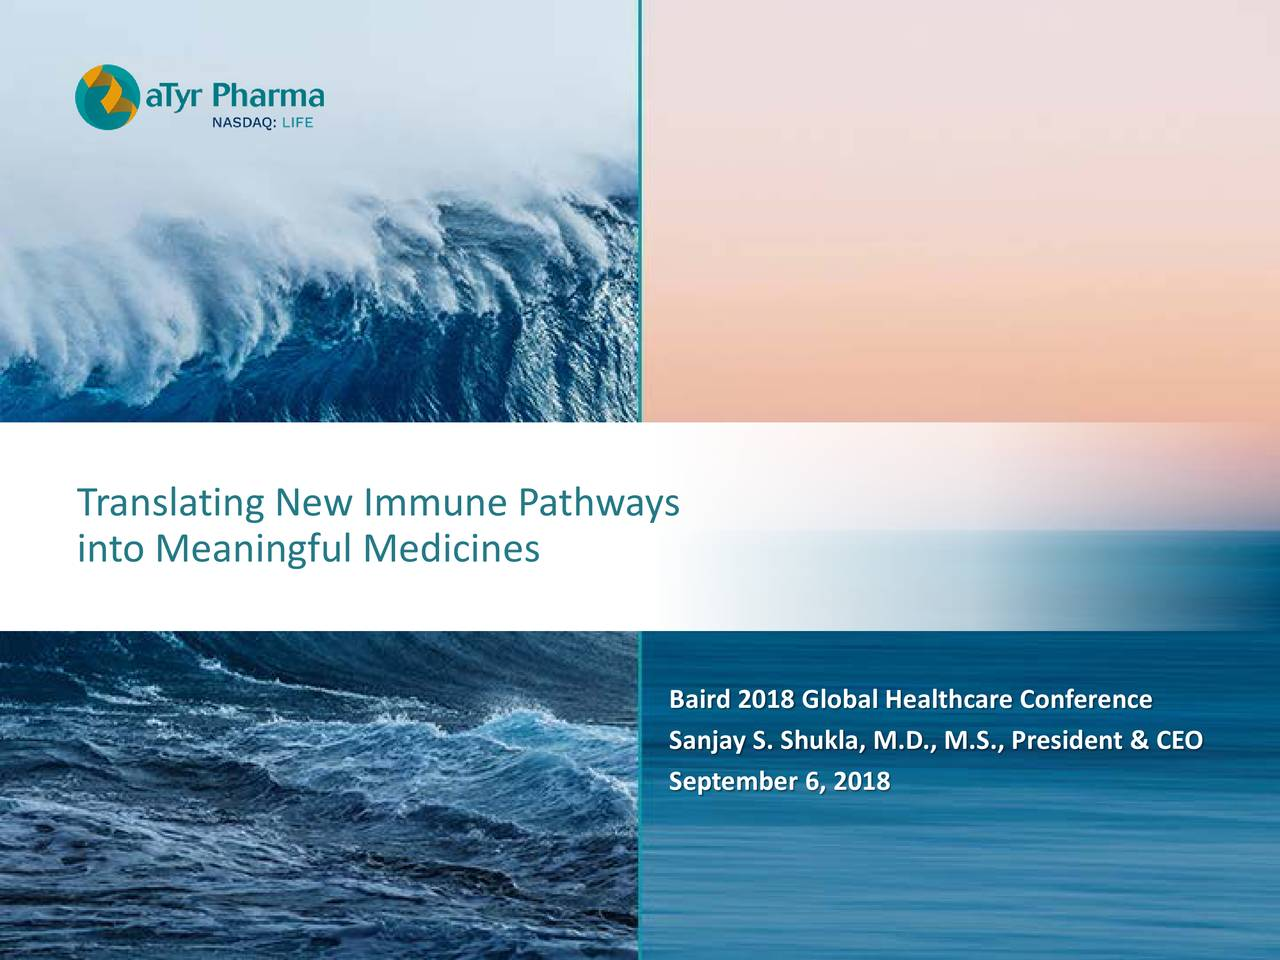 into Meaningful Medicines Baird 2018 Global Healthcare Conference Sanjay S. Shukla, M.D., M.S., President & CEO September 6, 2018